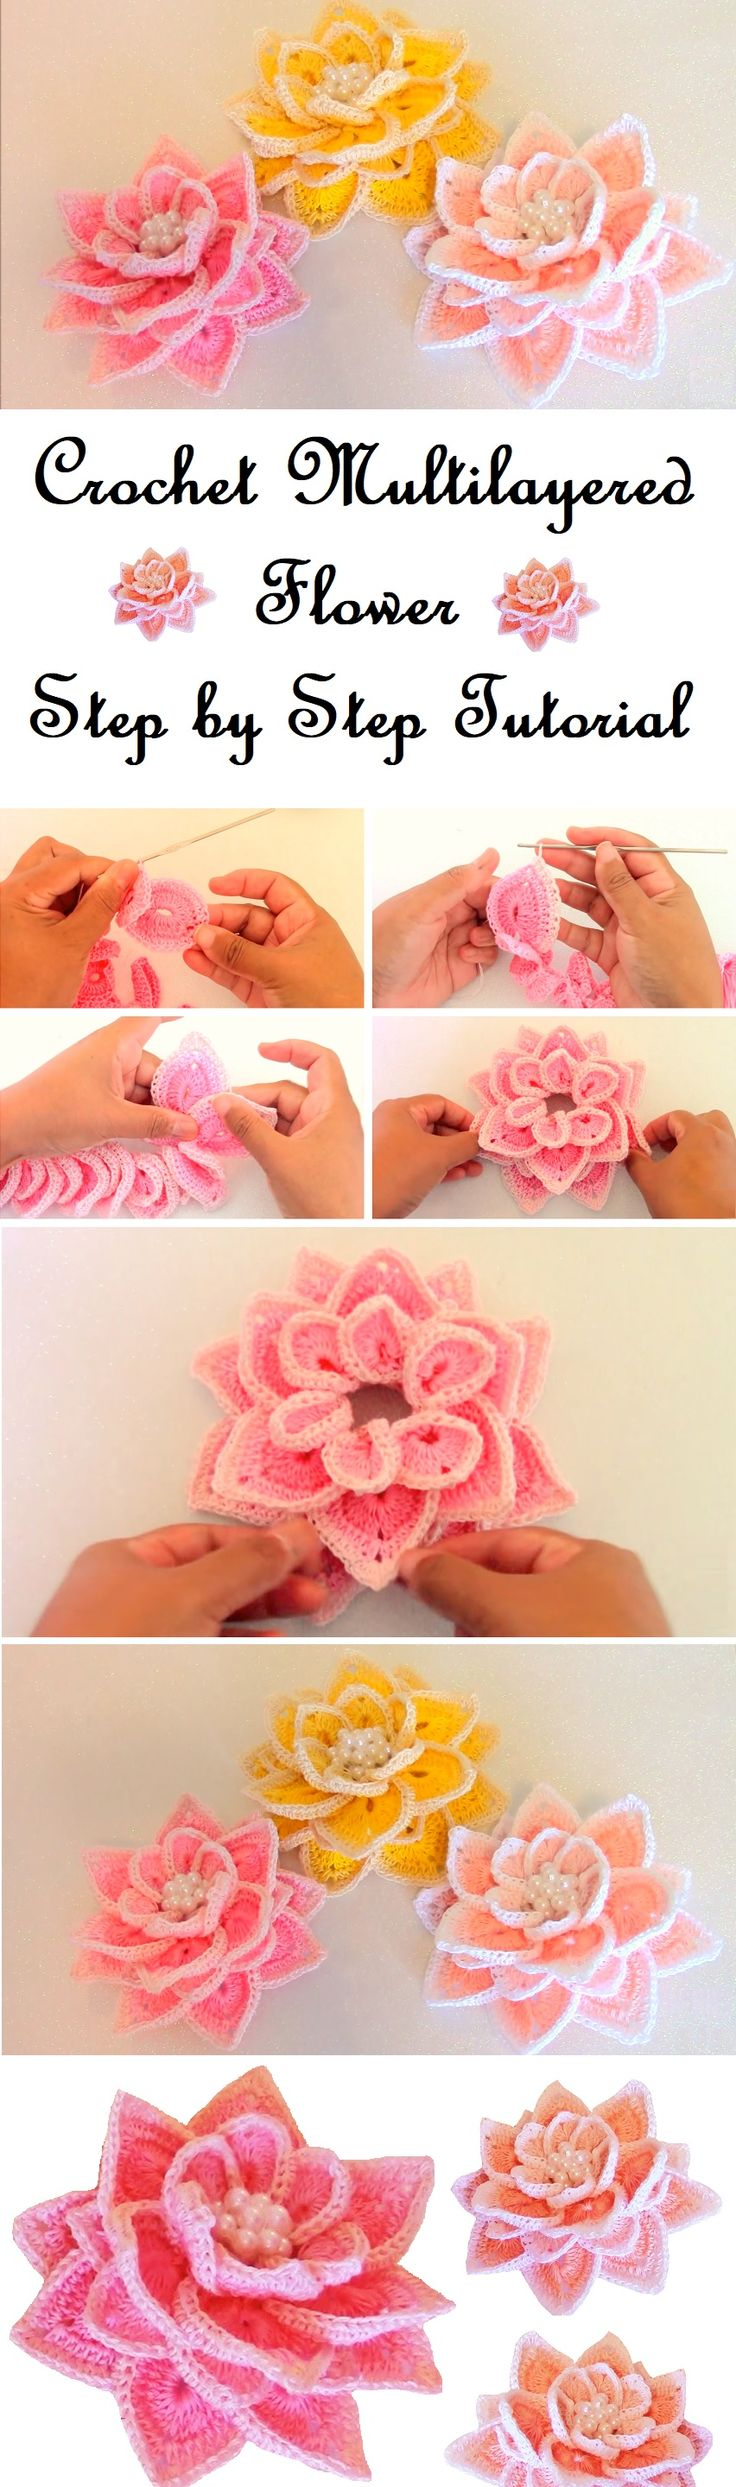 Yet another flower tutorial is available for our use. We are about to learn to crochet this beautiful flower. With the help of the tutorial we have found online this job will certainly be easy and most definitely will be a lot of fun as well. In this tutorial we are going to learn to… Read More Multilayered Flower Tutorial